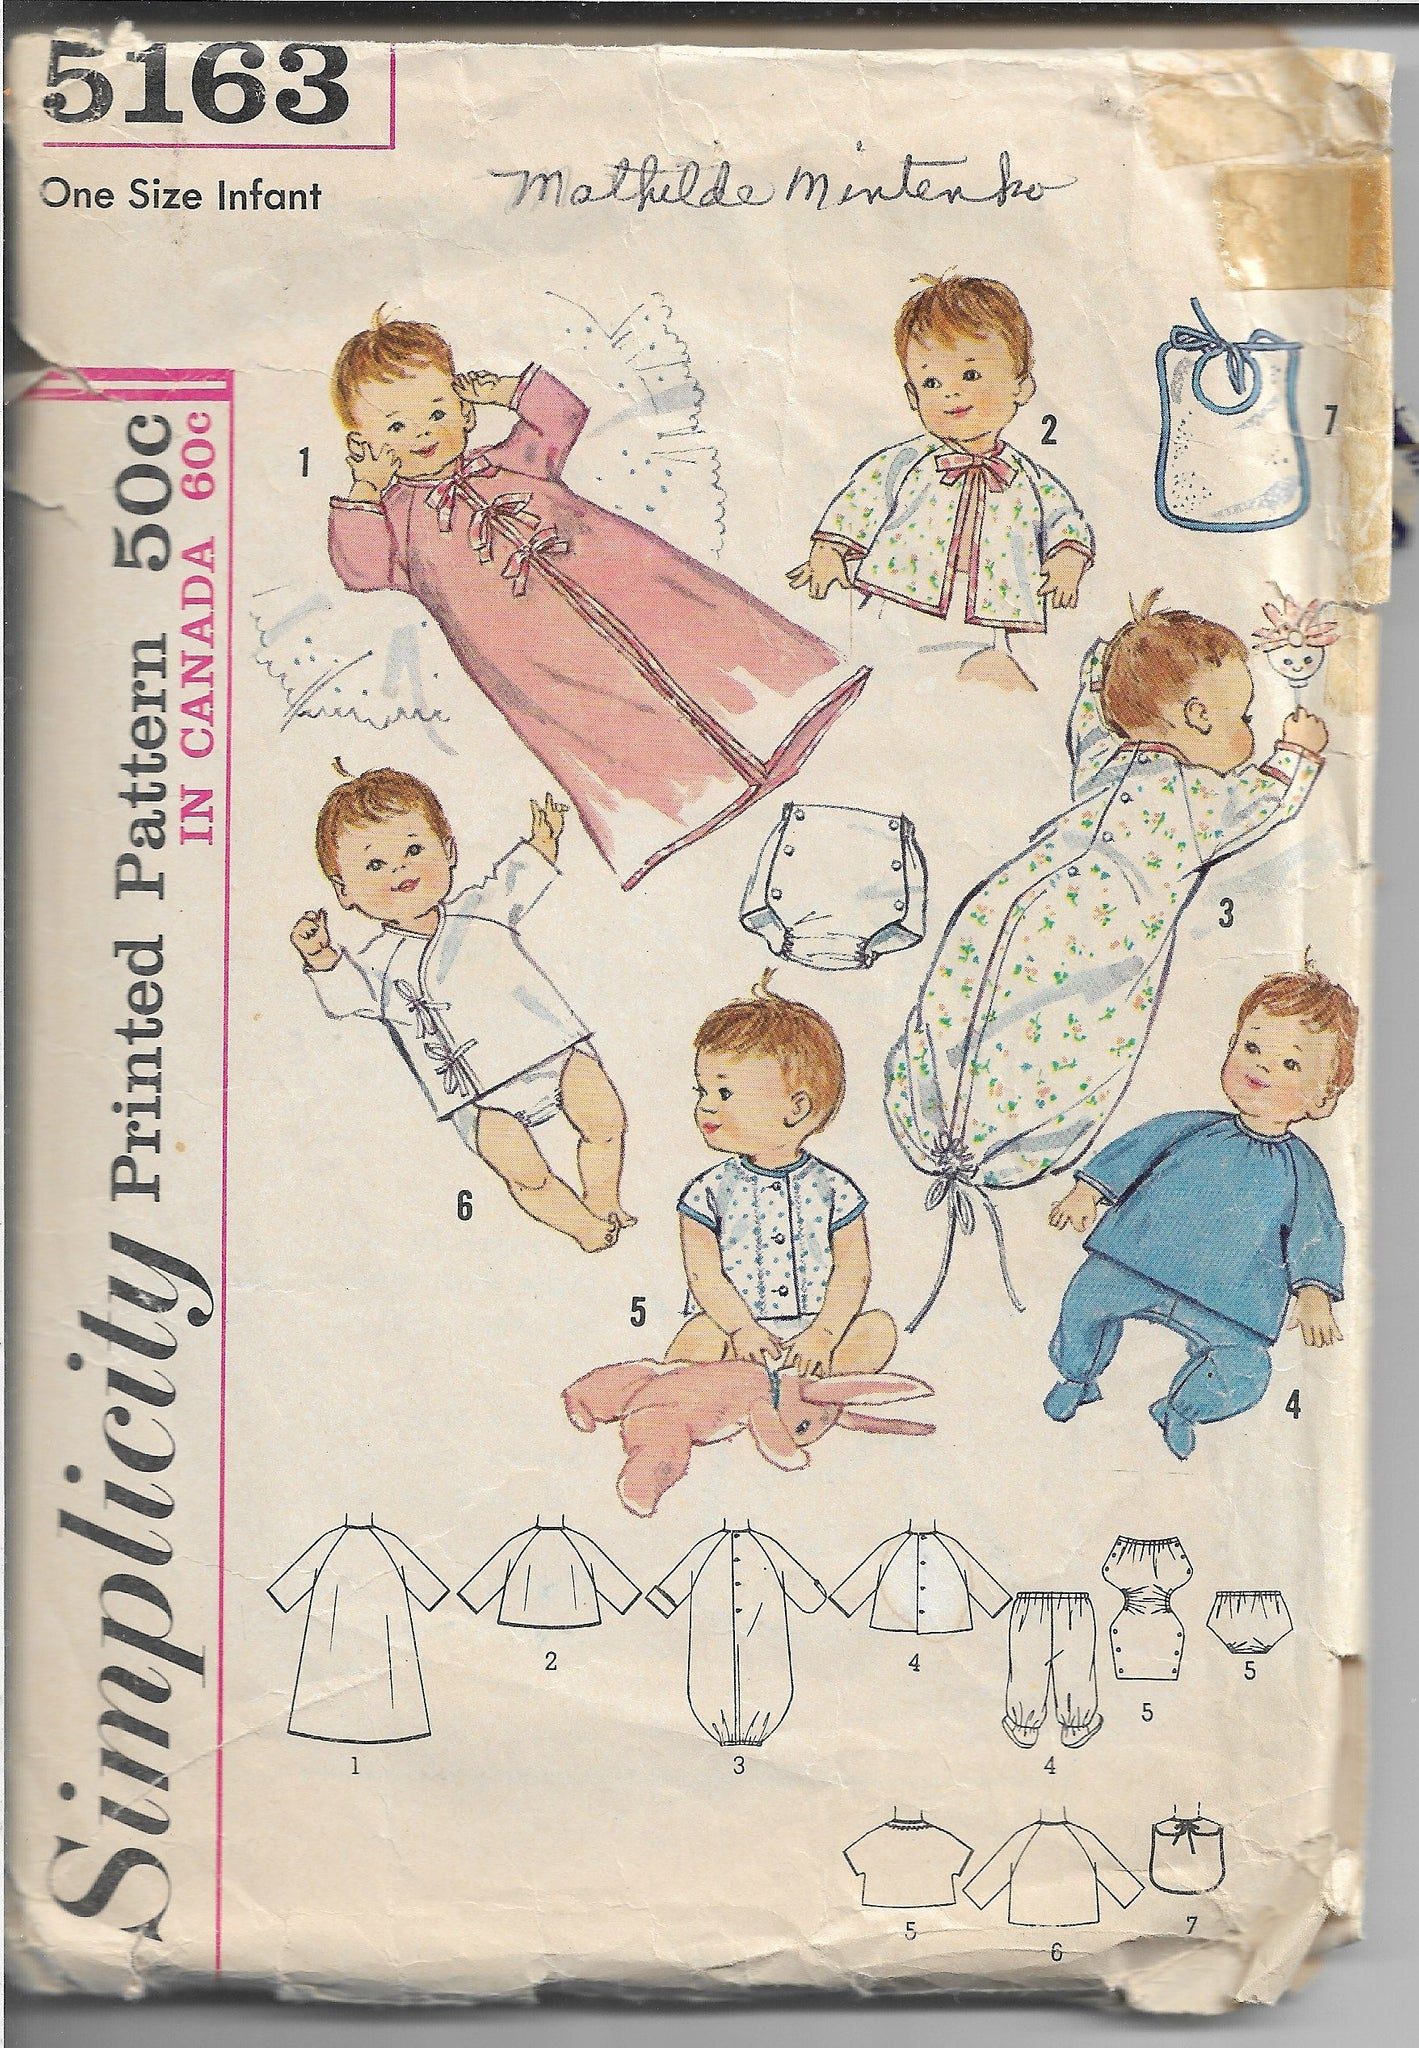 Simplicity 5163 Baby Newborn Layette Kimono Pajamas Vintage Sewing Pattern 1960s - VintageStitching - Vintage Sewing Patterns